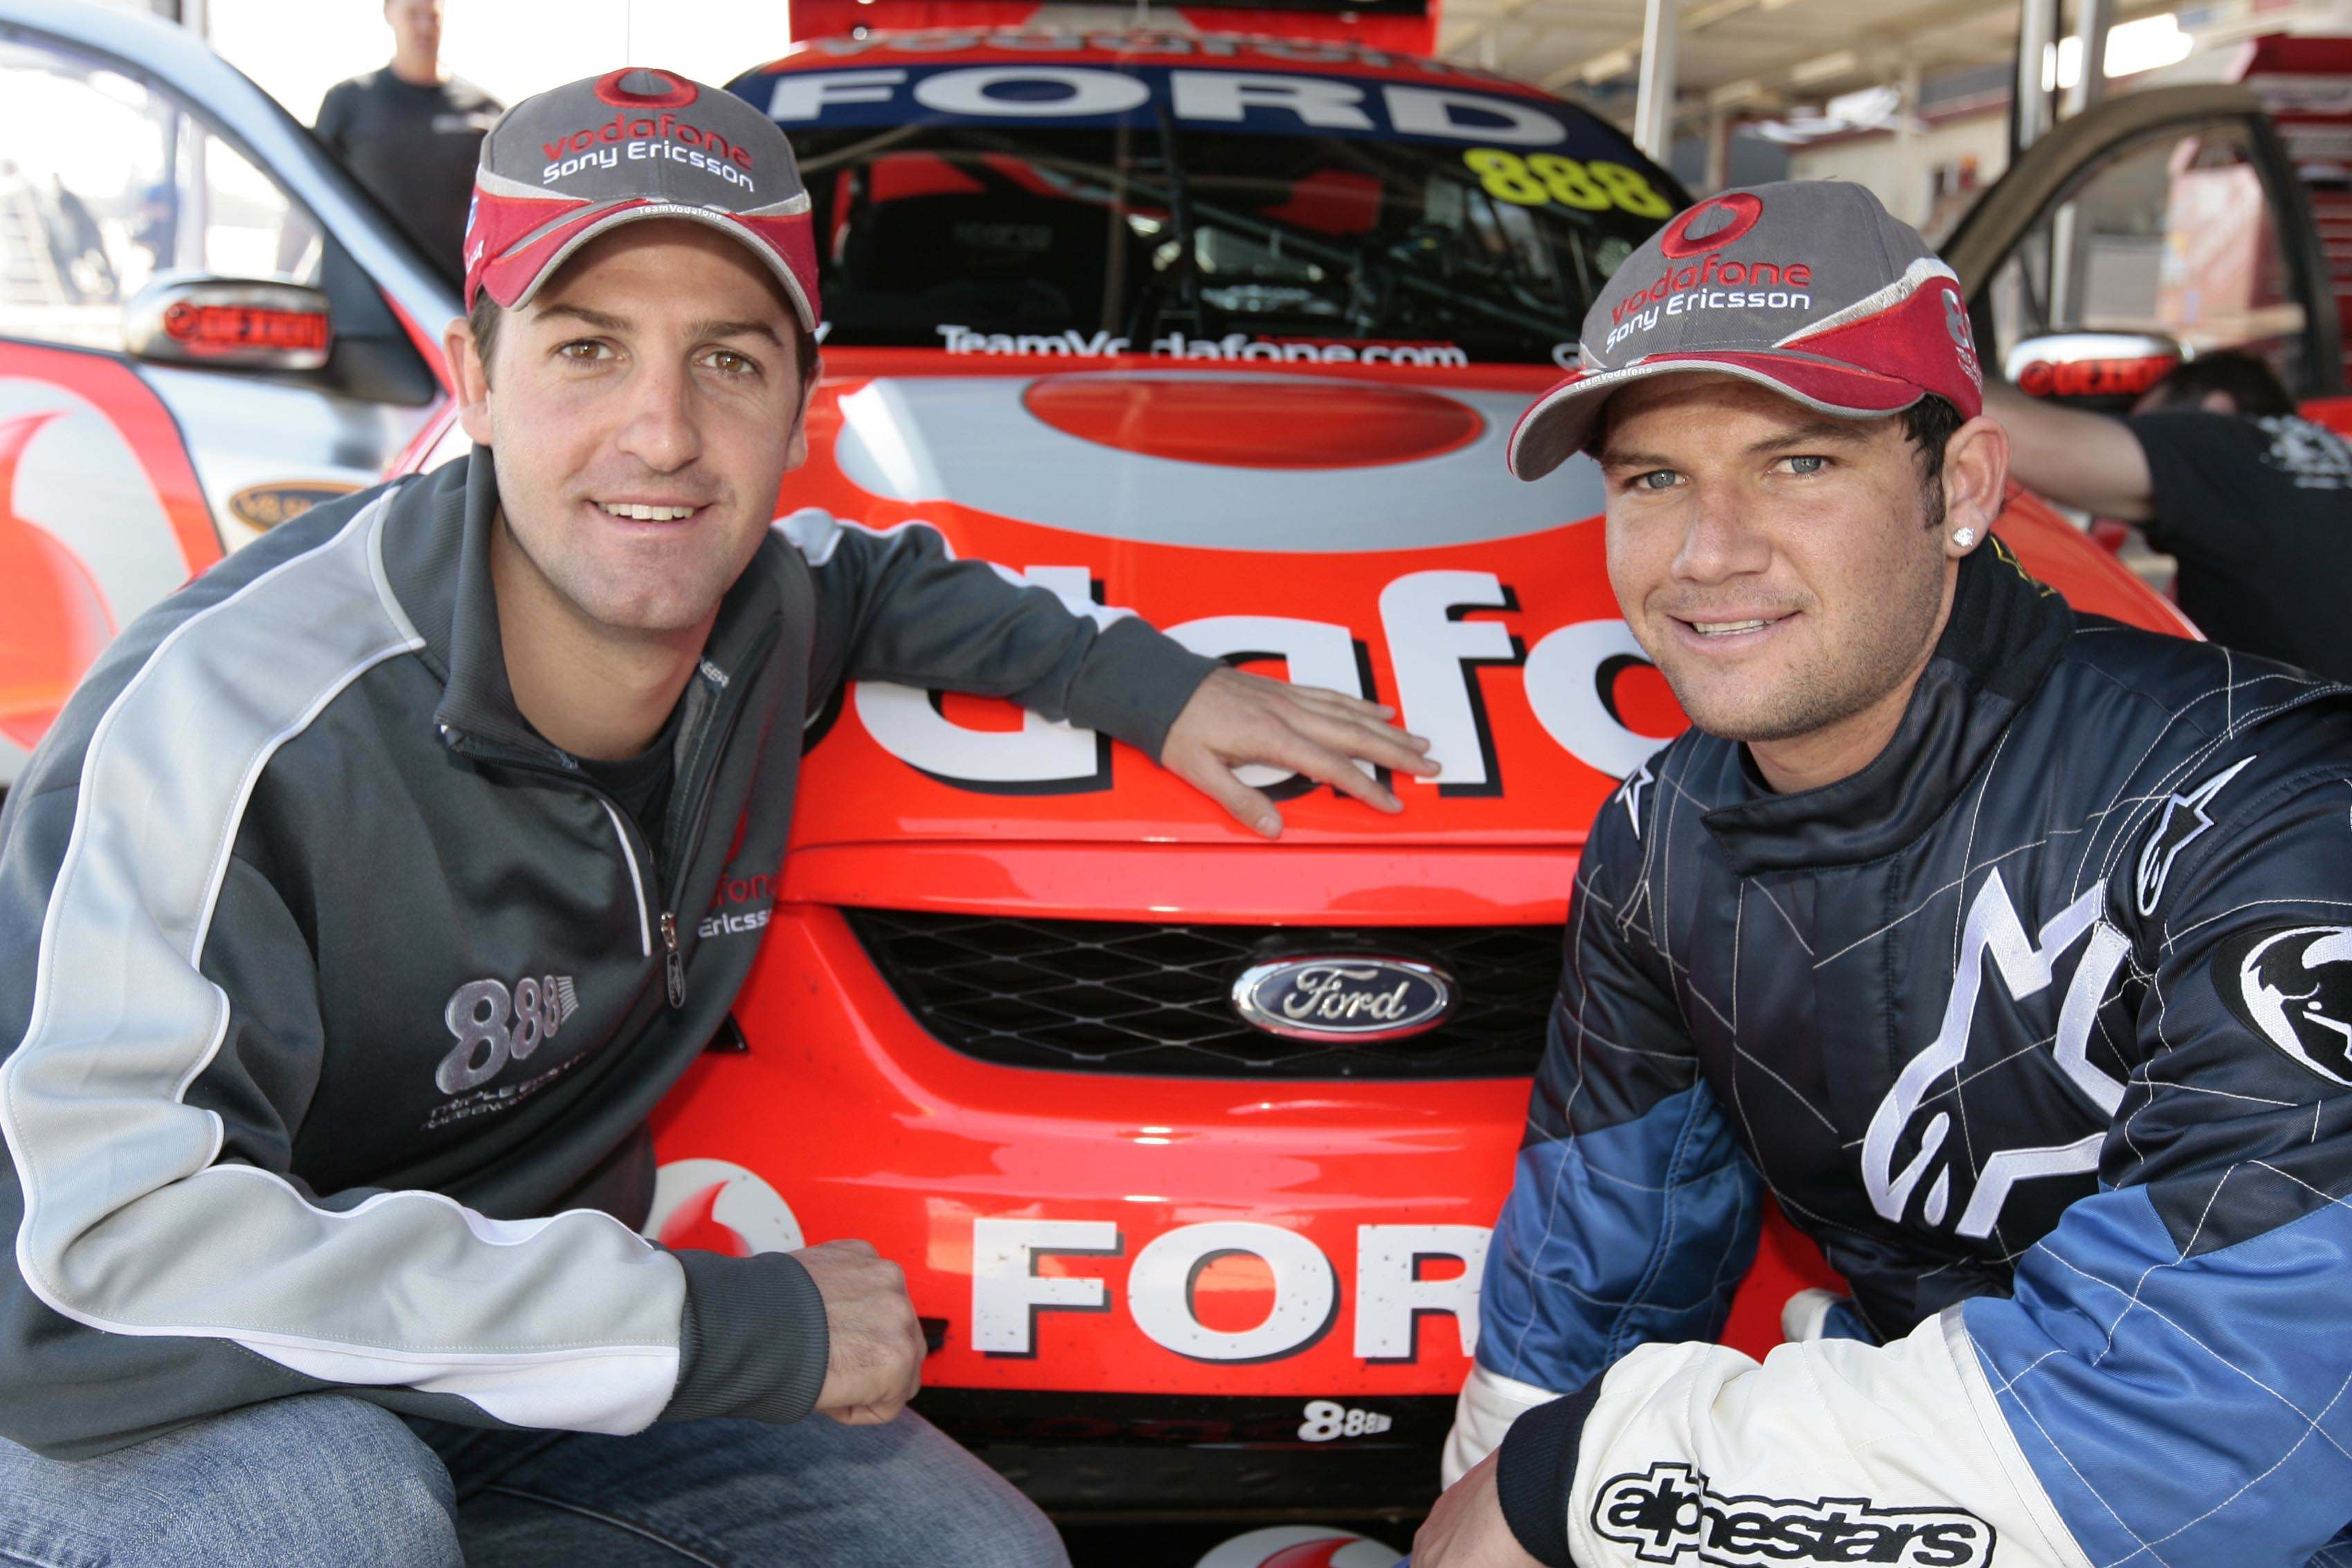 Chad Reed aims for V8 Supercars in 2011